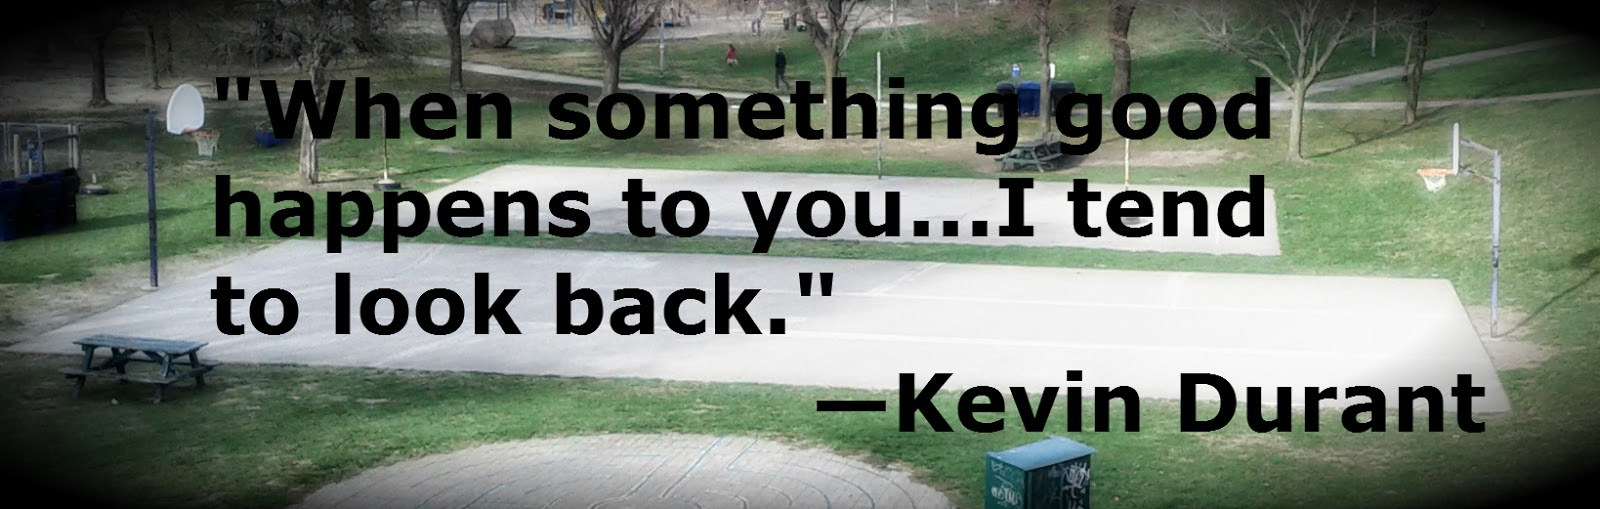 Kevin Durant Quote Motivational Quotes With Pictures Many Mma & Ufc Kevin Durant